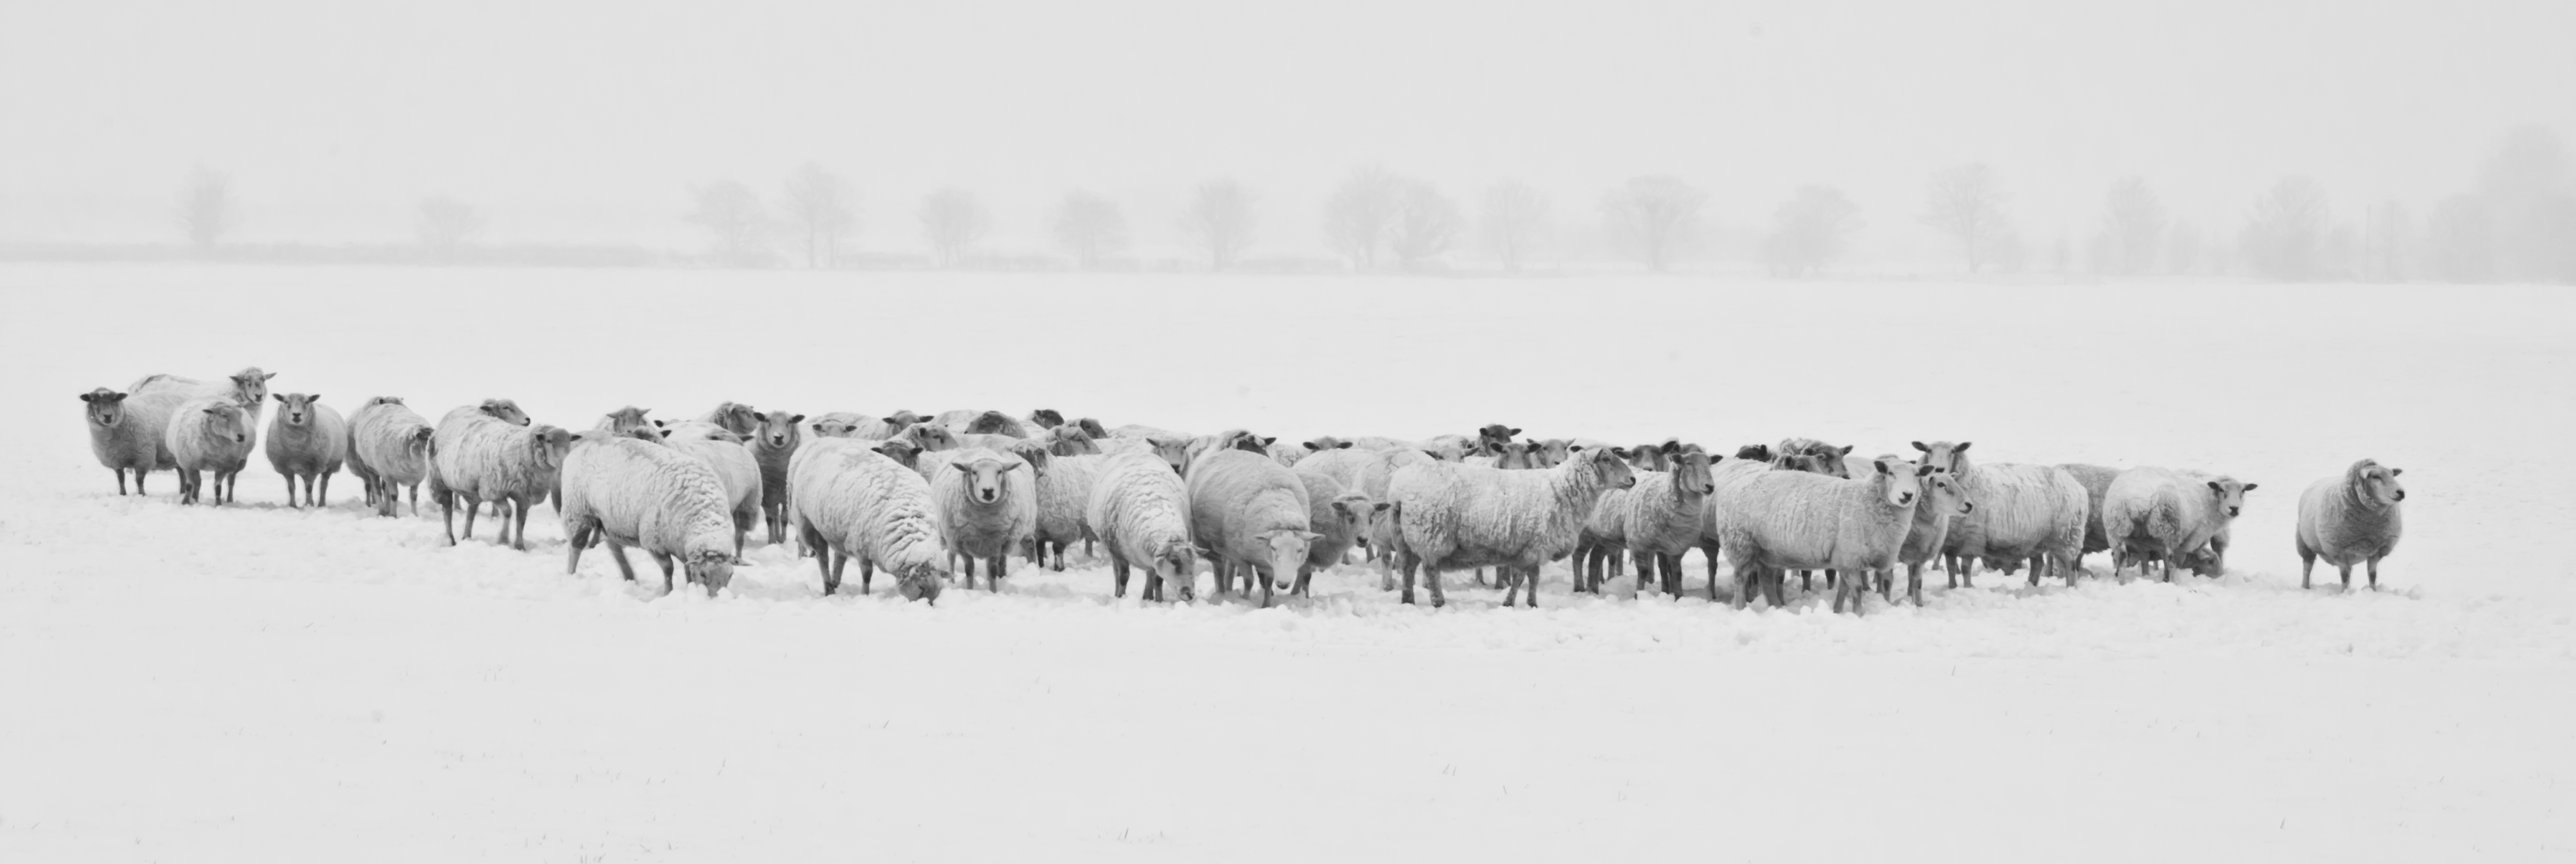 Flock of sheep in the snow, sheep, white and black, white, grazing objejas